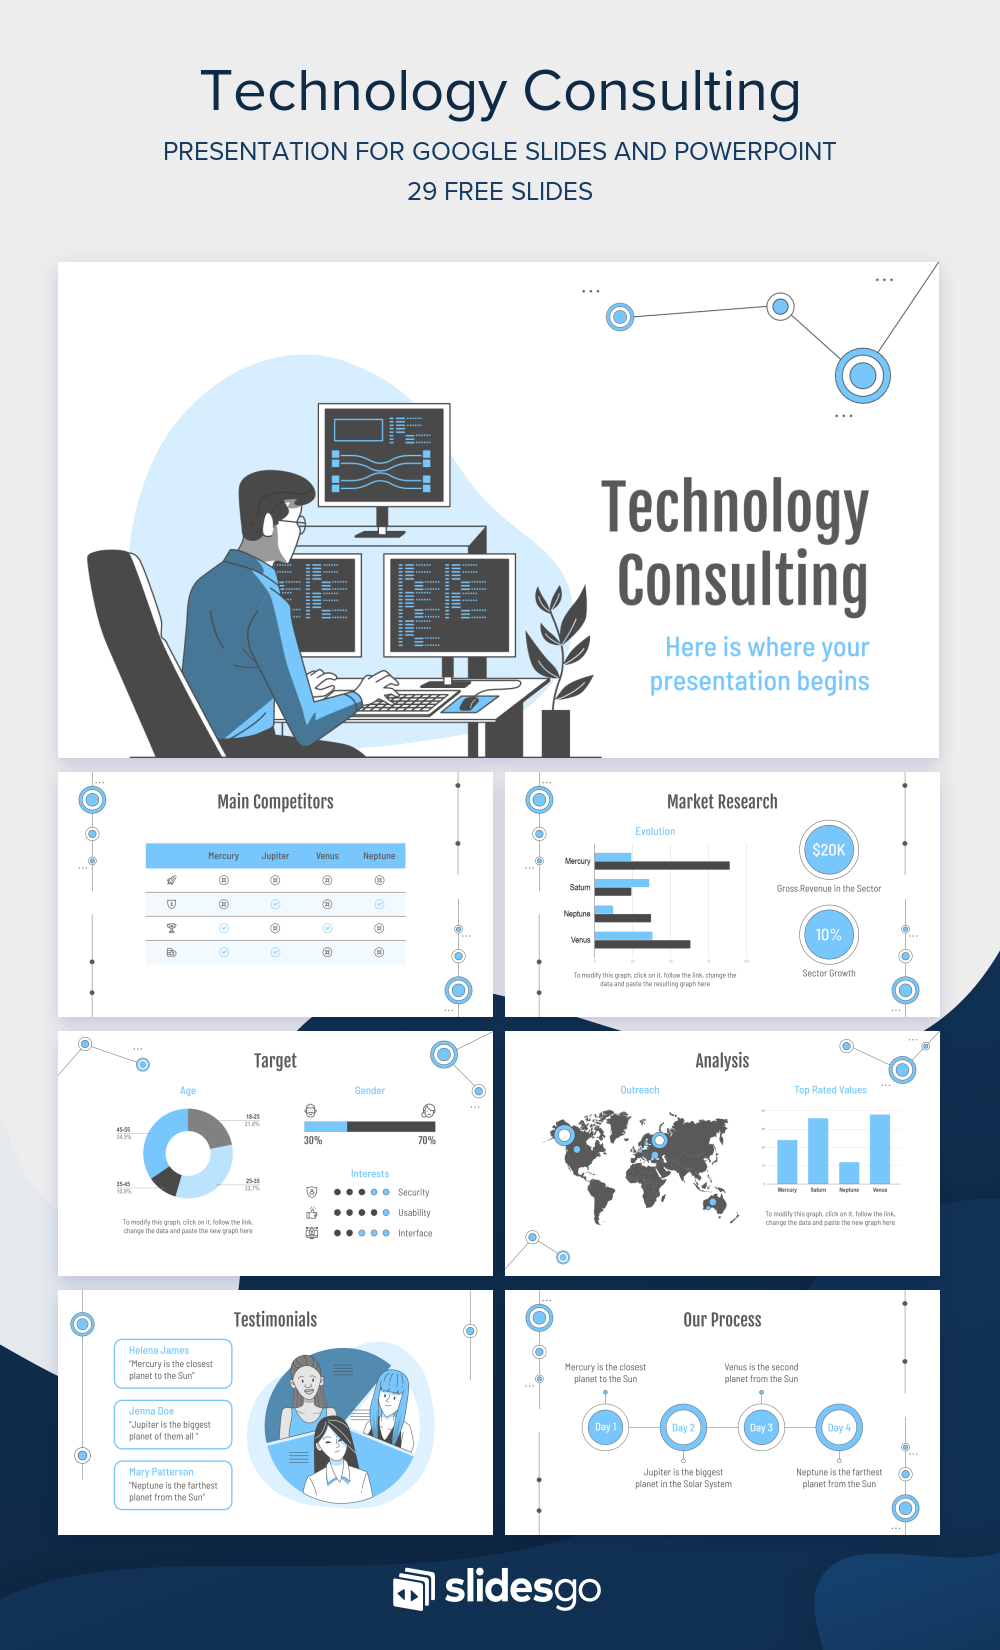 Get New Clients Designing A Consulting Sales Pitch For Your Technological C In 2021 Powerpoint Slide Designs Powerpoint Presentation Design Powerpoint Design Templates